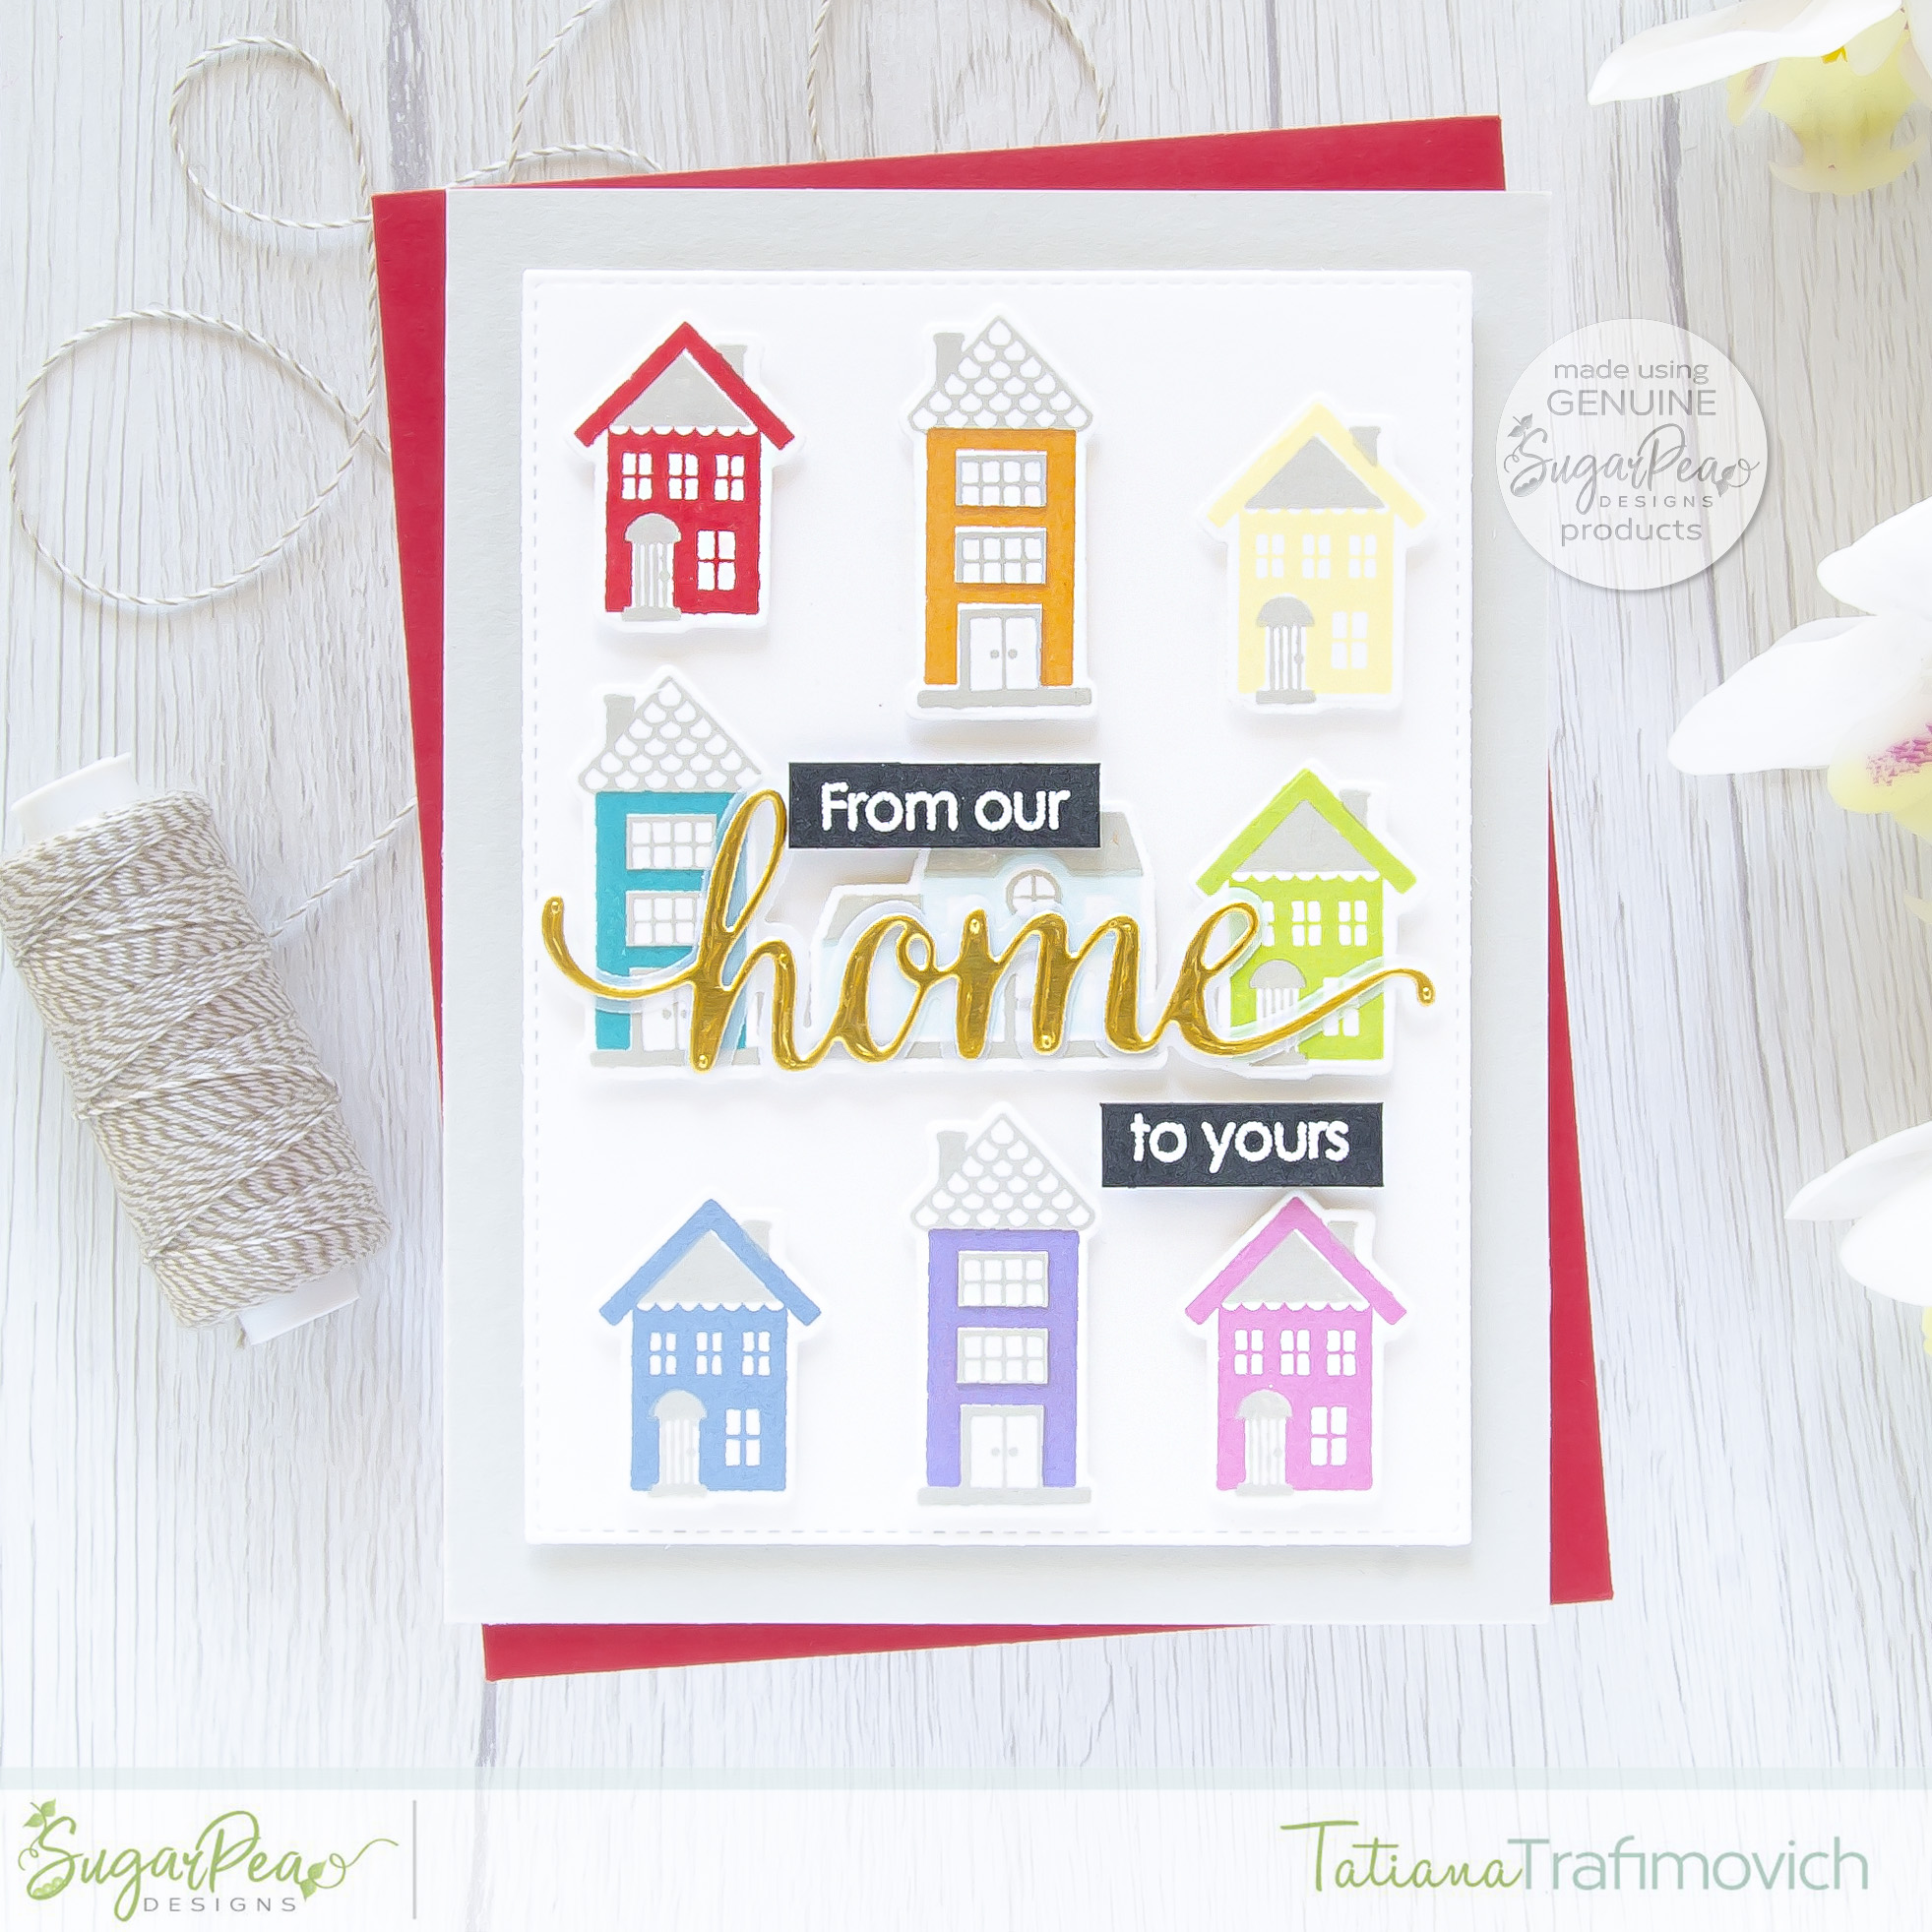 From Our Home To Yours #handmade card by Tatiana Trafimovich #tatianacraftandart - Little Village stamp set by SugarPea Designs #sugarpeadesigns